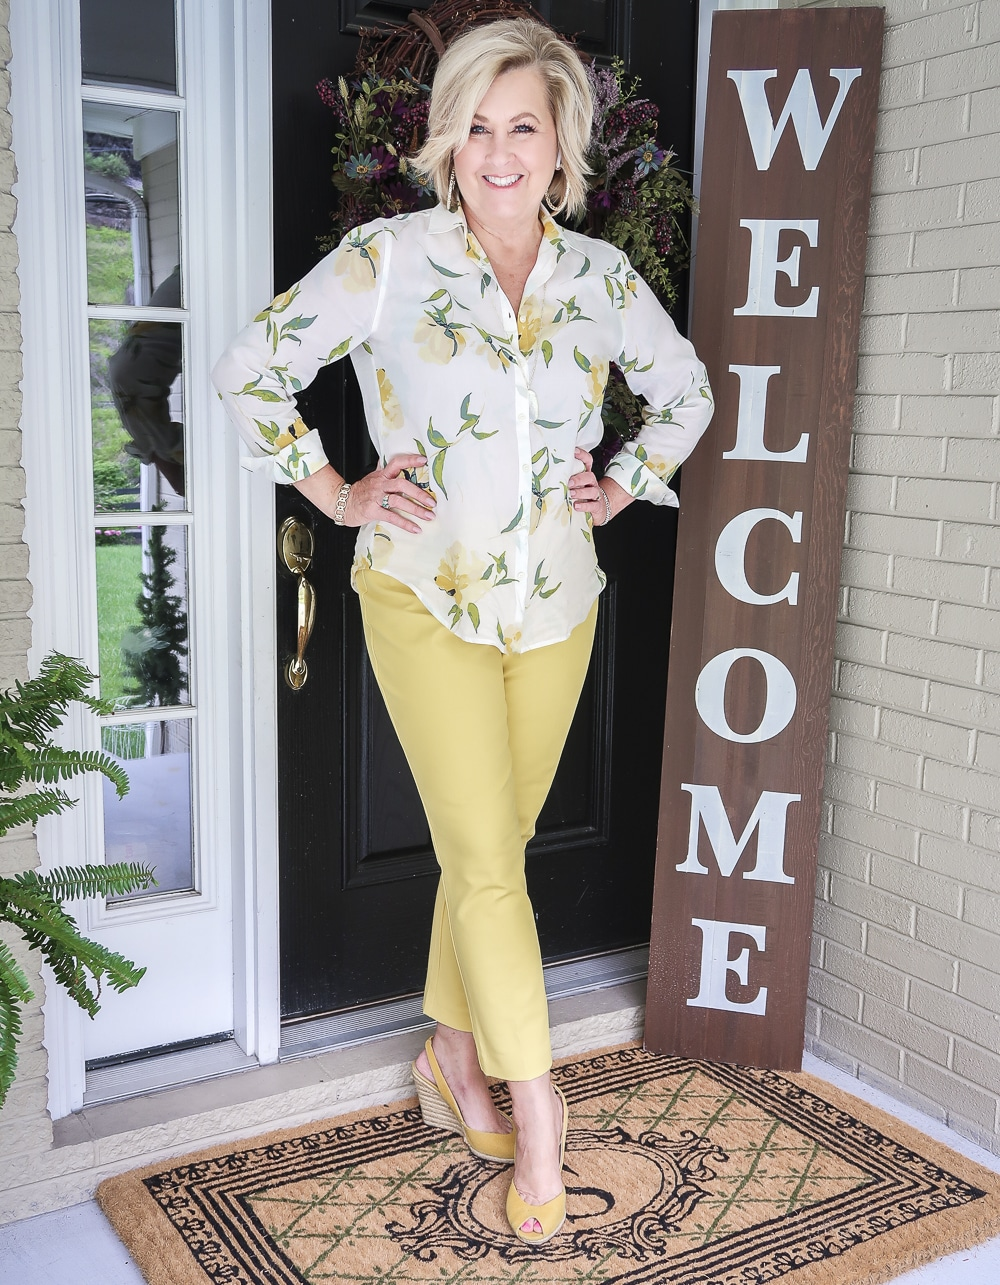 Fashion Blogger 50 Is Not Old is looking sunny in this white and yellow outfit along with the yellow espadrilles from Michael Kors